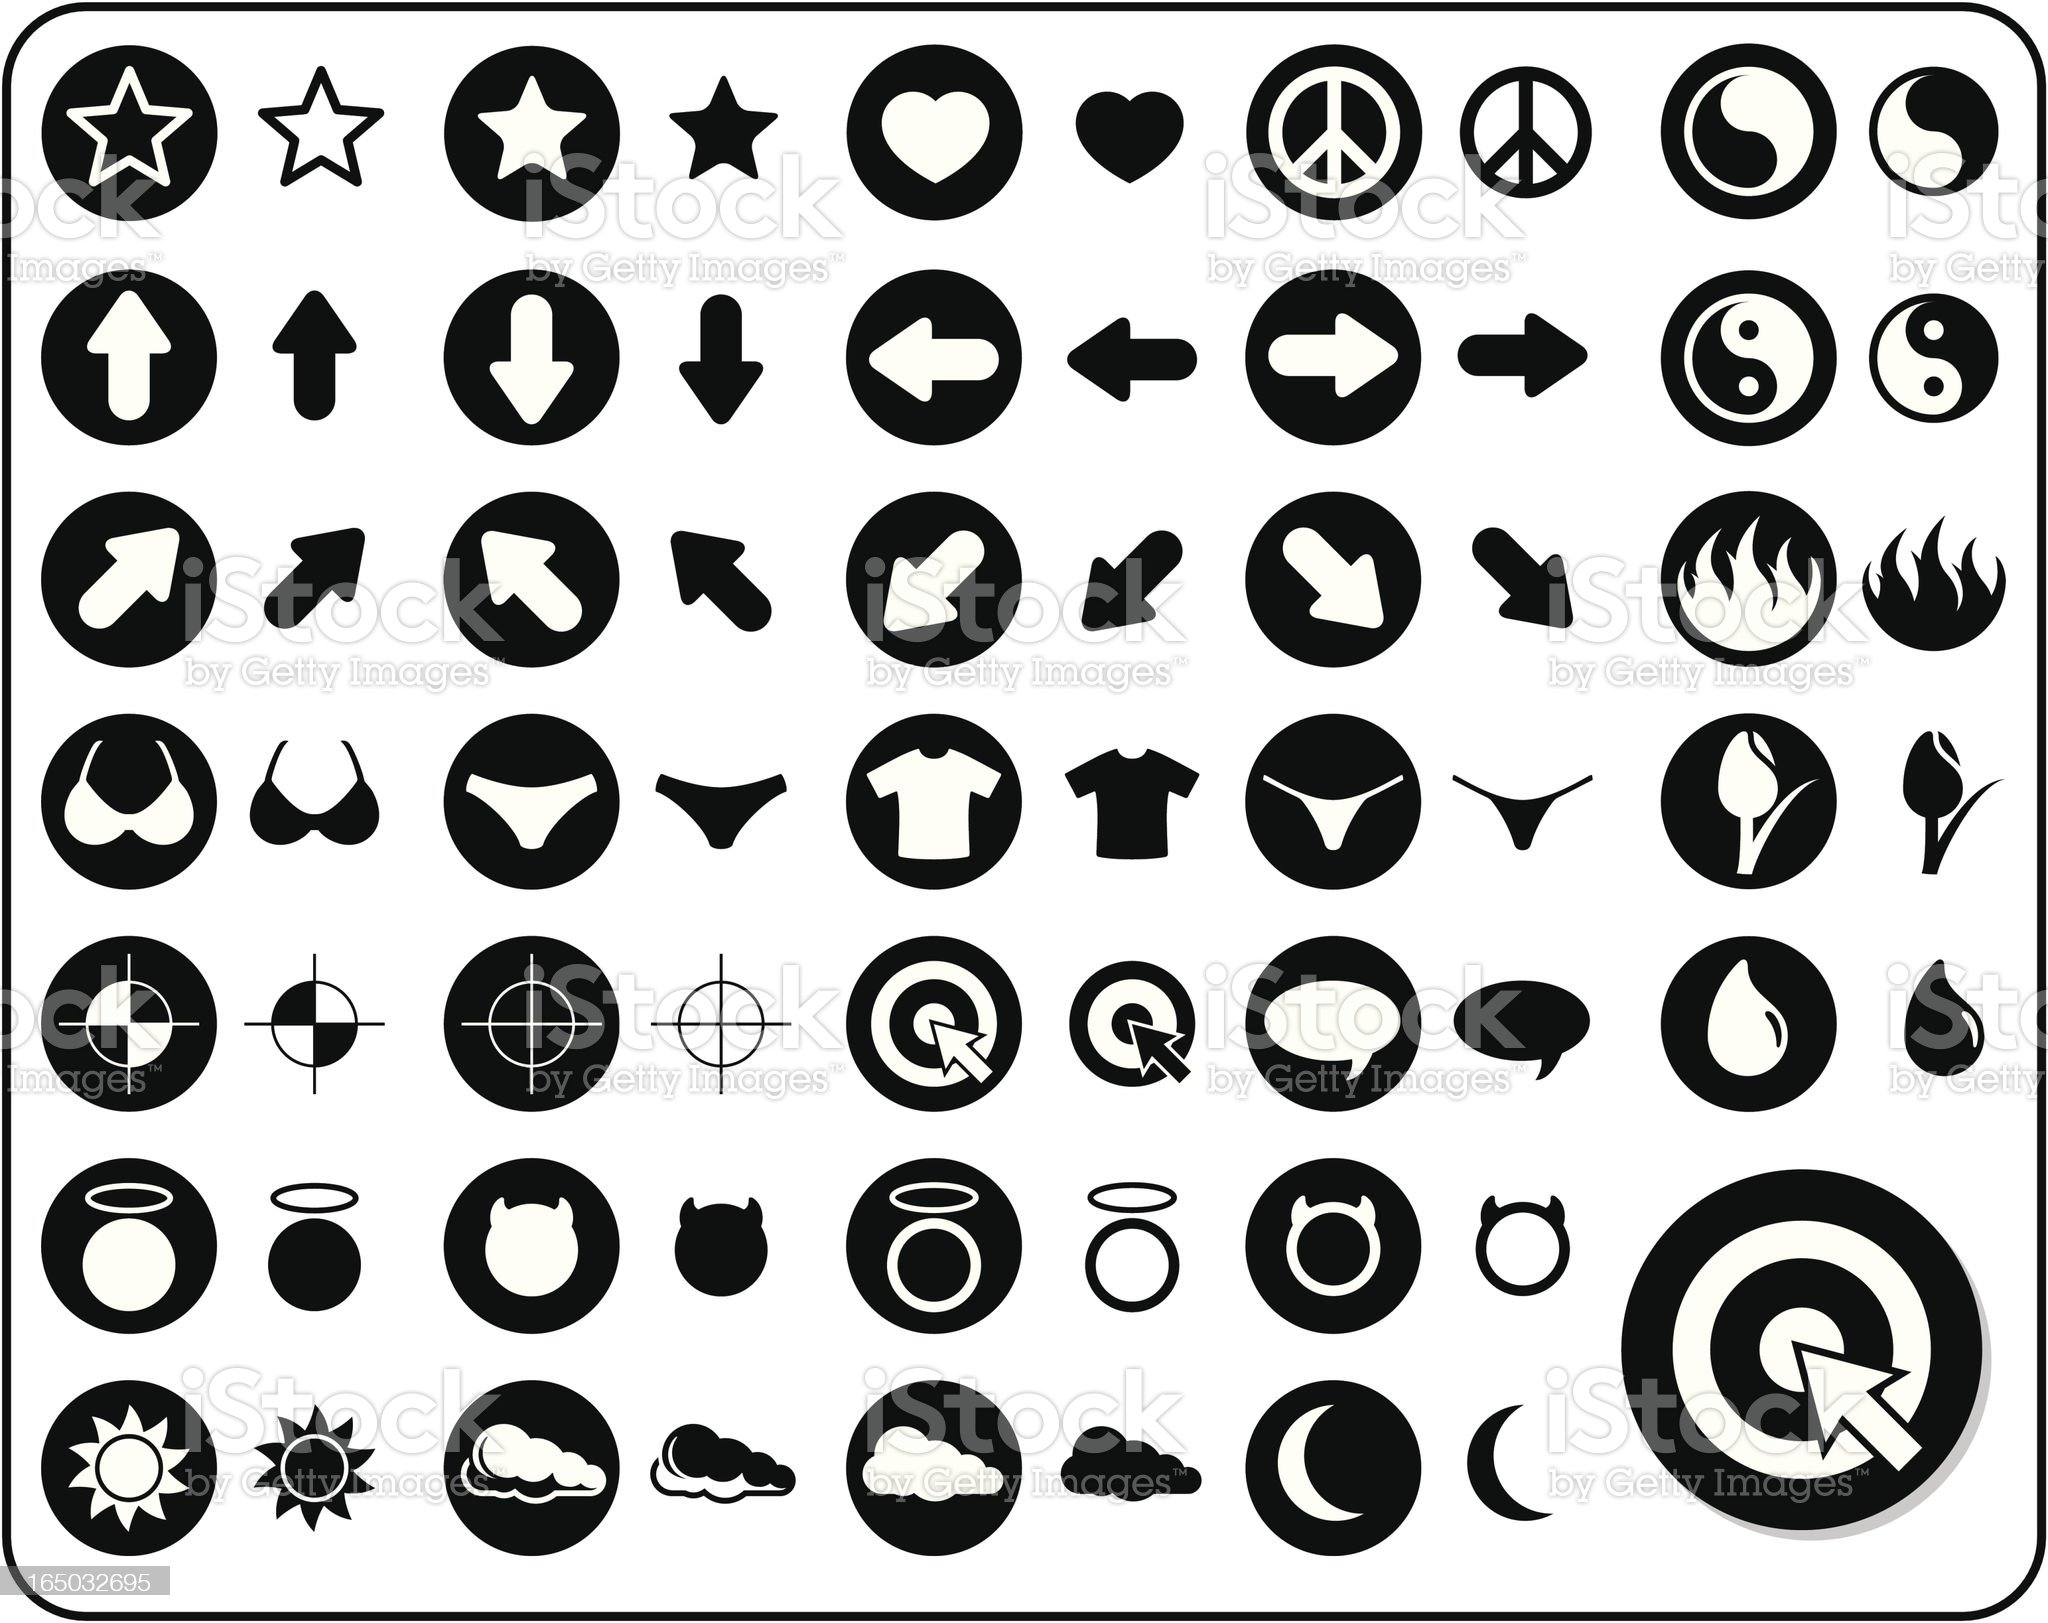 Icon Set 1 - V2 (vector and raster) royalty-free stock vector art